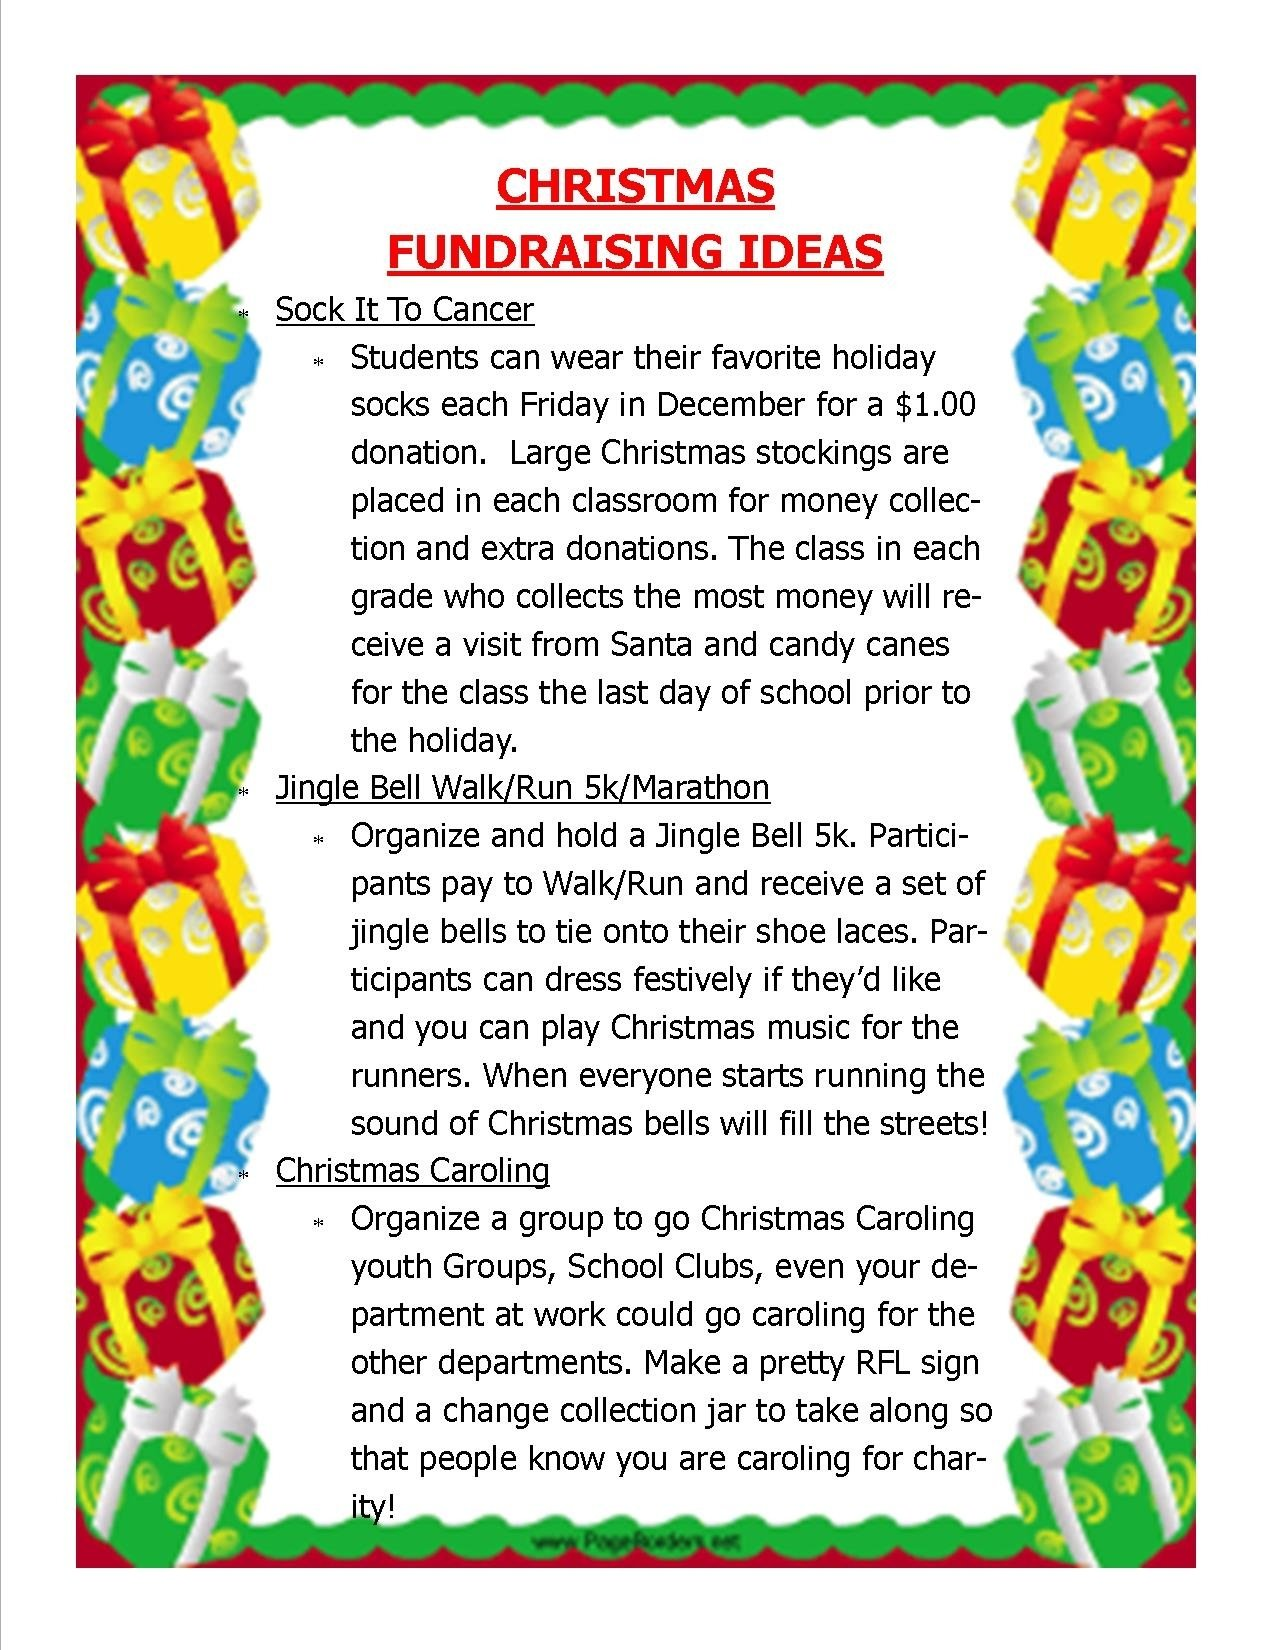 relay for life christmas fundraising ideas | ccfa - take steps